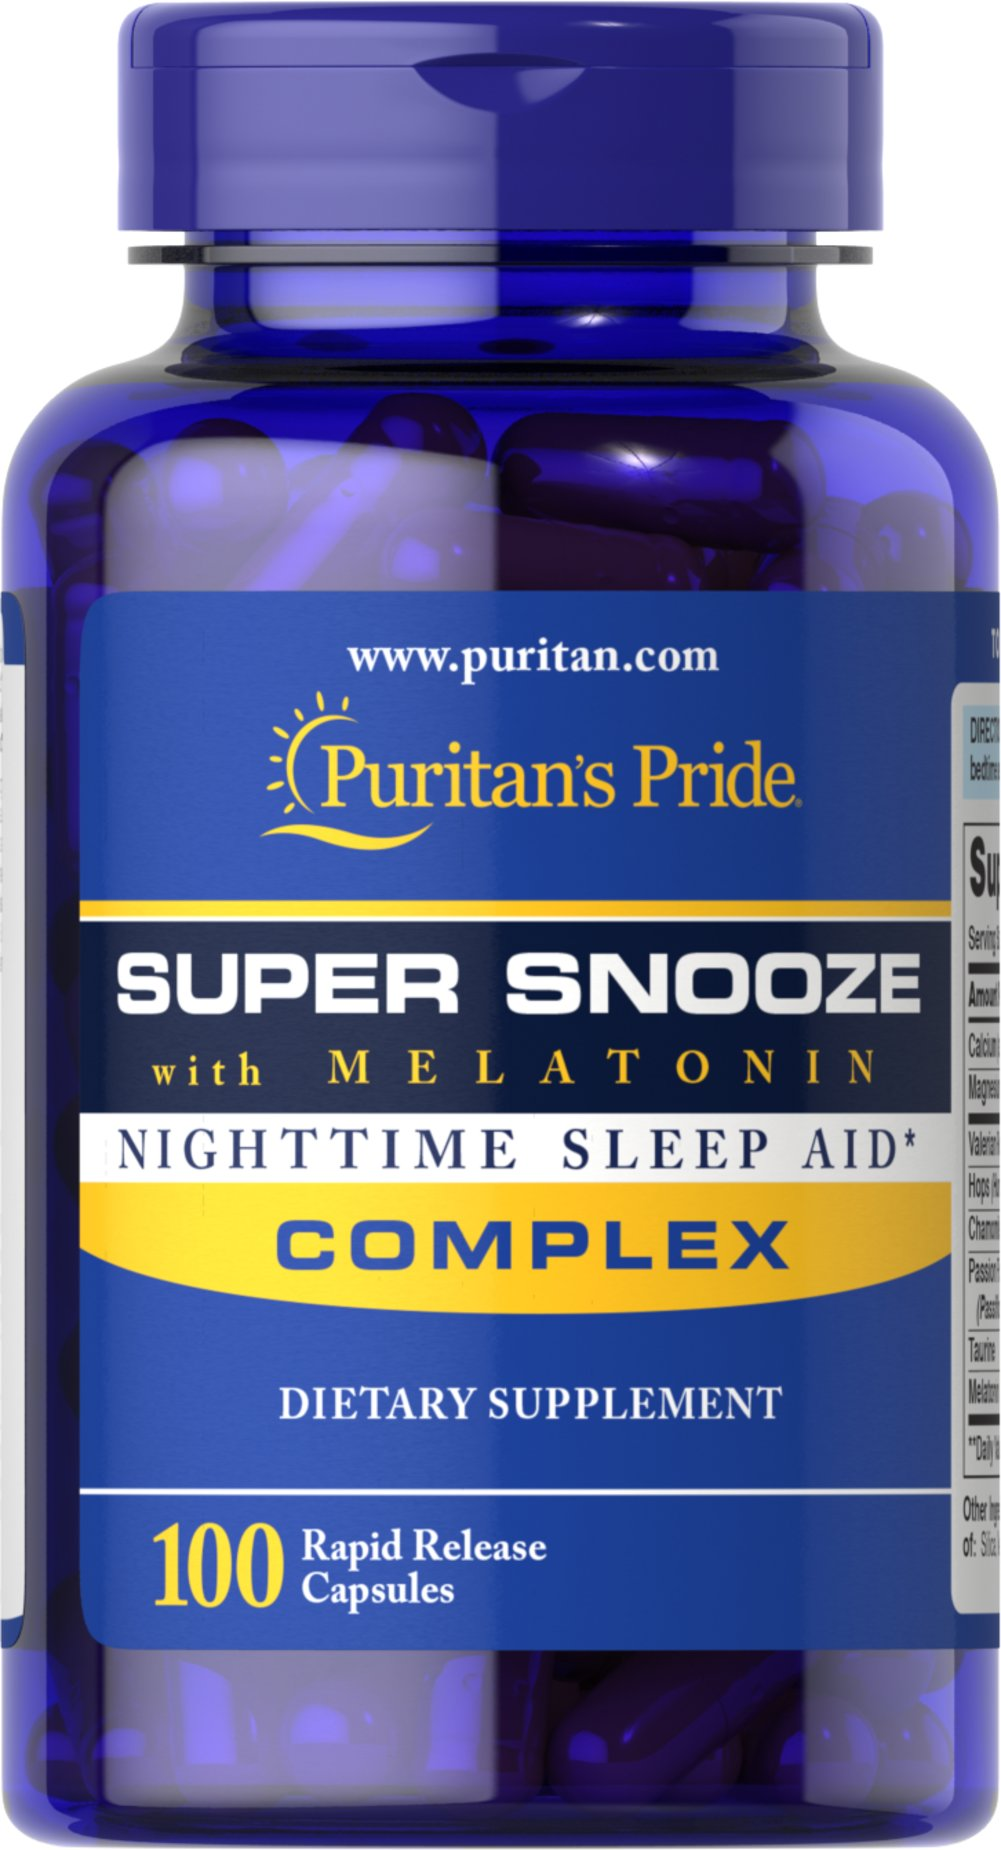 Super Snooze with Melatonin <p>Super Snooze with Melatonin works in harmony with your natural sleep cycle to give you the tranquil rest you deserve, so you can awaken feeling refreshed.** Super Snooze with Melatonin is perfect for people experiencing occasional sleeplessness, those with jet lag, or anyone seeking to improve their quality of rest.** Key ingredients include Valerian Root,  Chamomile, Passion Flower and Melatonin, among others.</p> 100 Capsules  $10.99